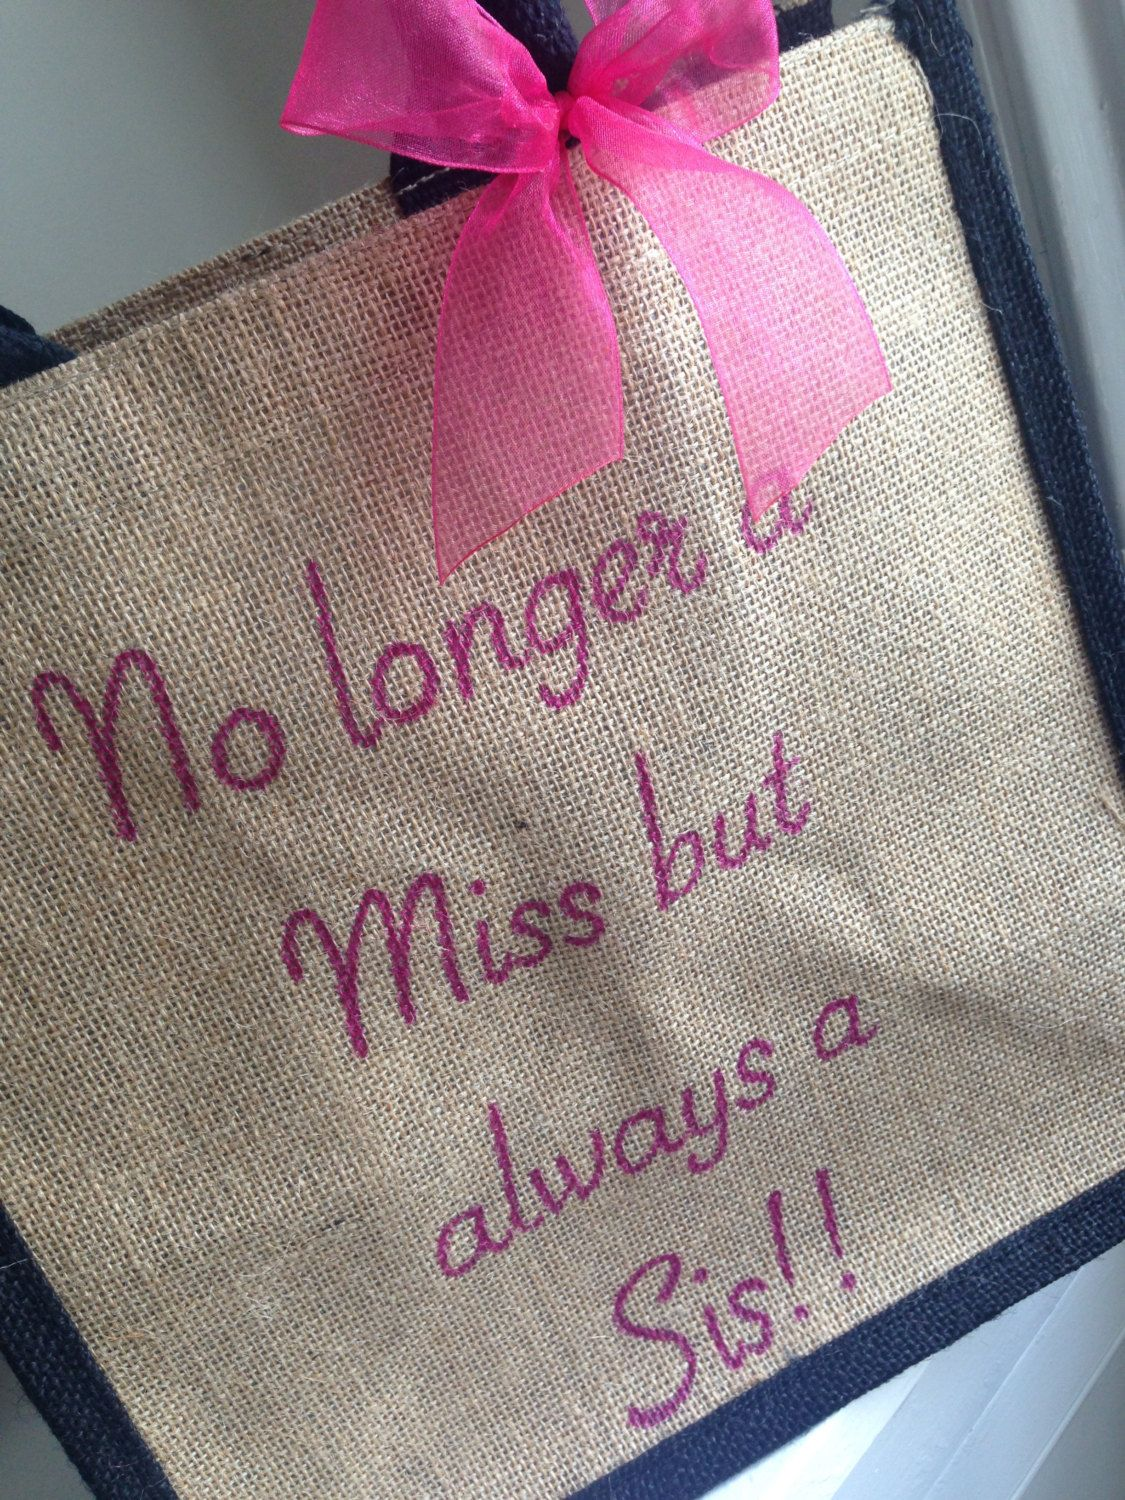 Wedding Day Tote Bag for Sister u0027No longer a Miss but always a Sis!!u0027u2026 & Wedding Day Tote Bag for Sister u0027No longer a Miss but always a Sis ...